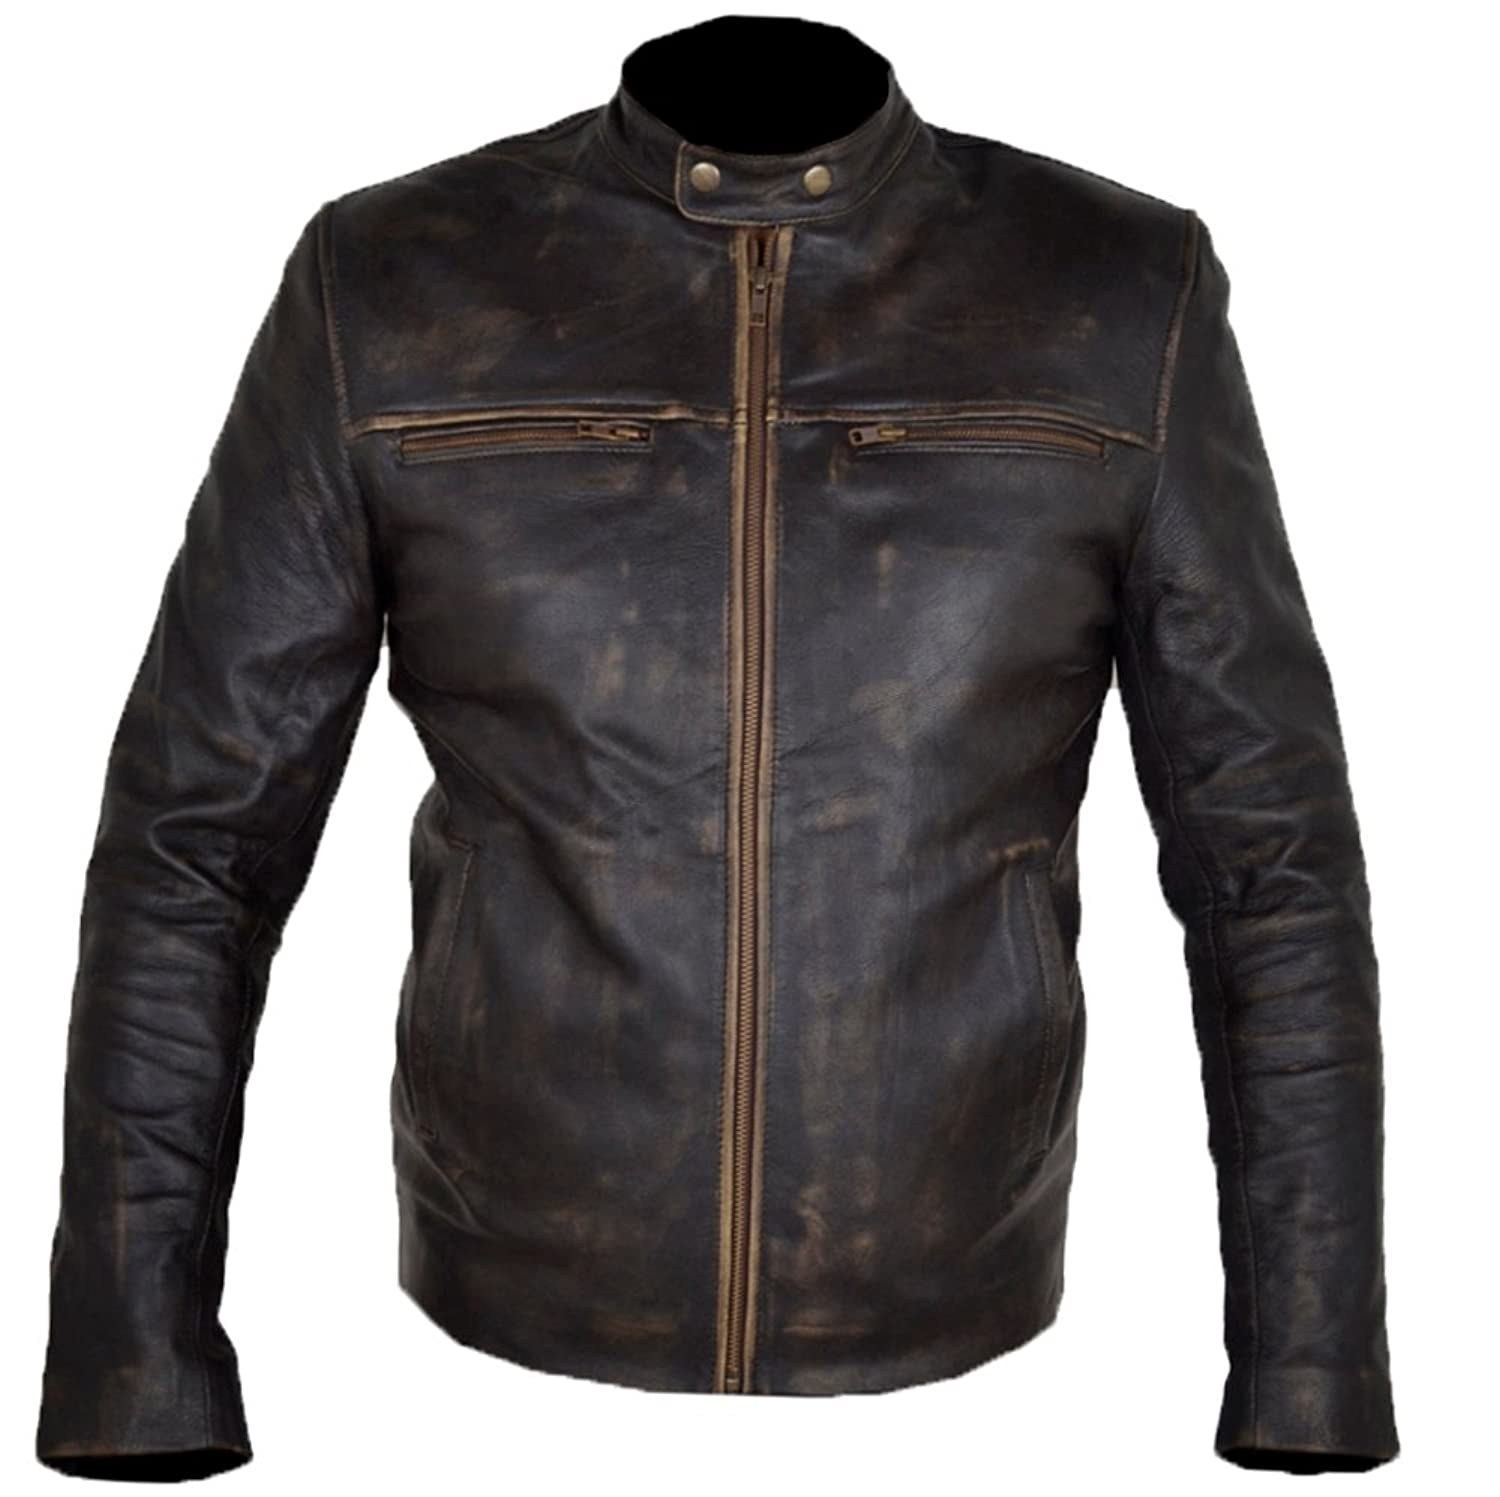 Hunger Games Wes Bentley Distress Brown Vintage Cowhide Leather Jacket